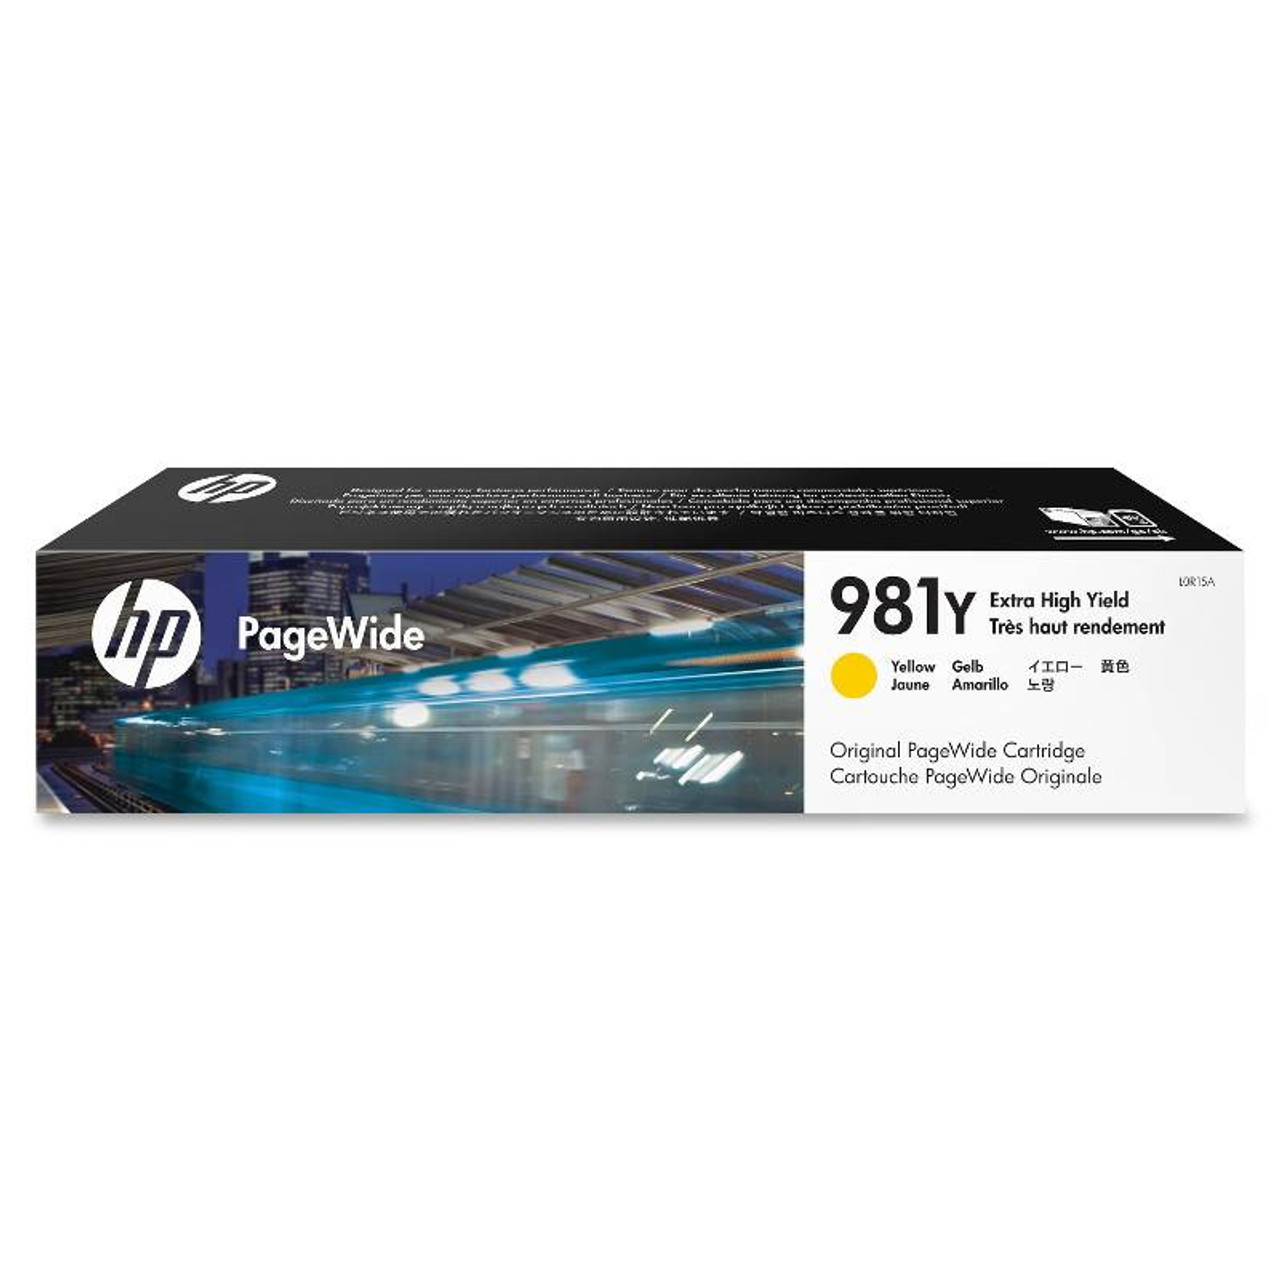 Image for HP 981Y Extra High Yield Yellow Original PageWide Cartridge (L0R15A) CX Computer Superstore